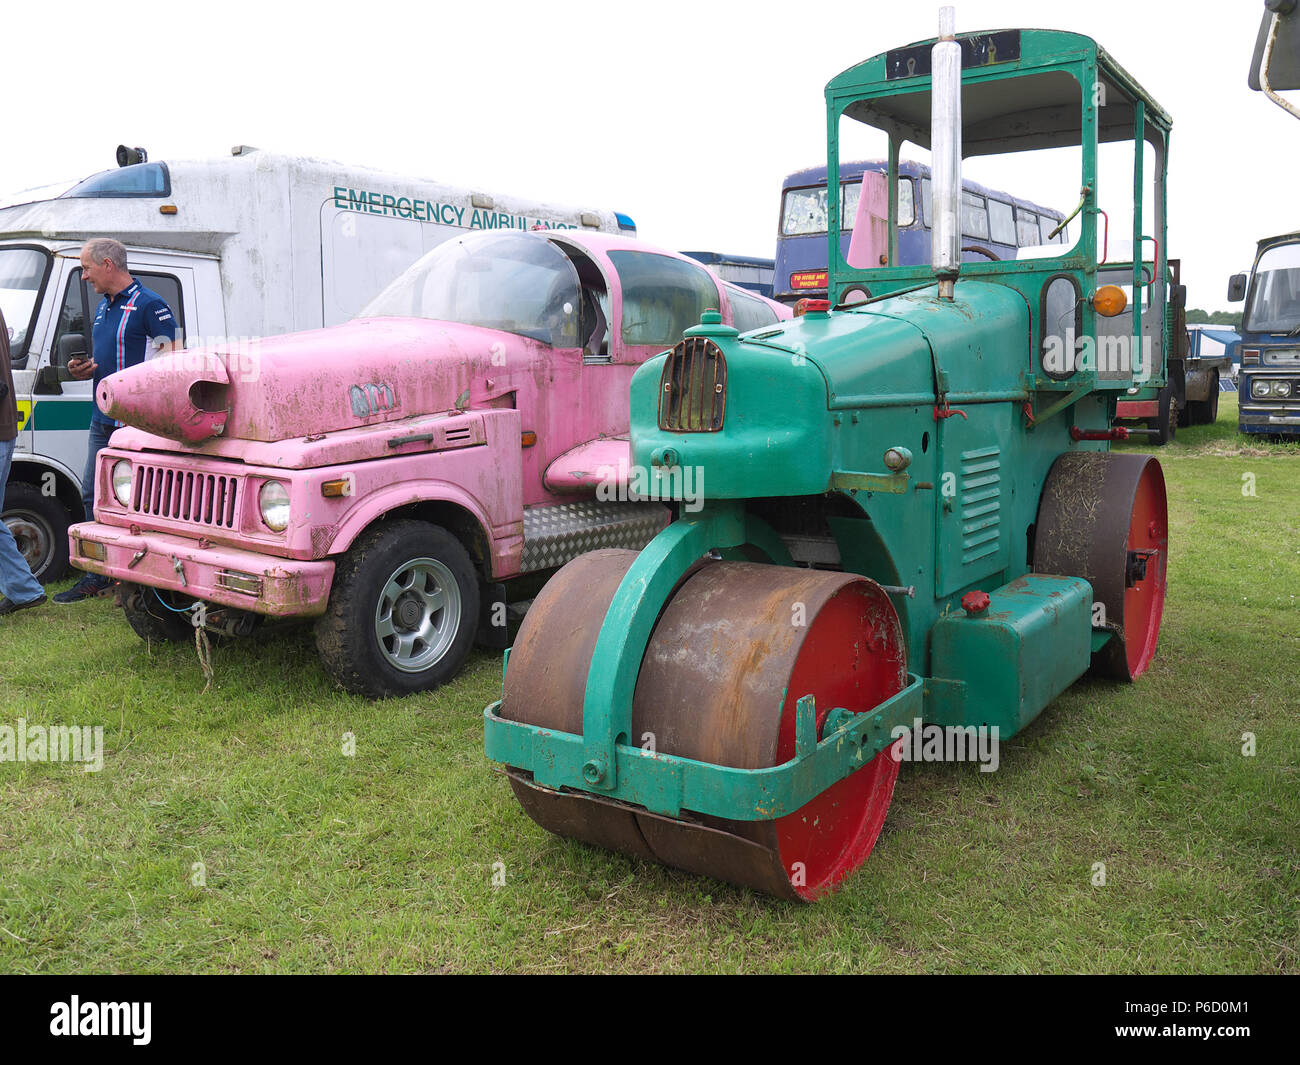 Diesel Road Roller and other vehicles all in need of TLC at Fir Park Wings and Wheels show - Stock Image